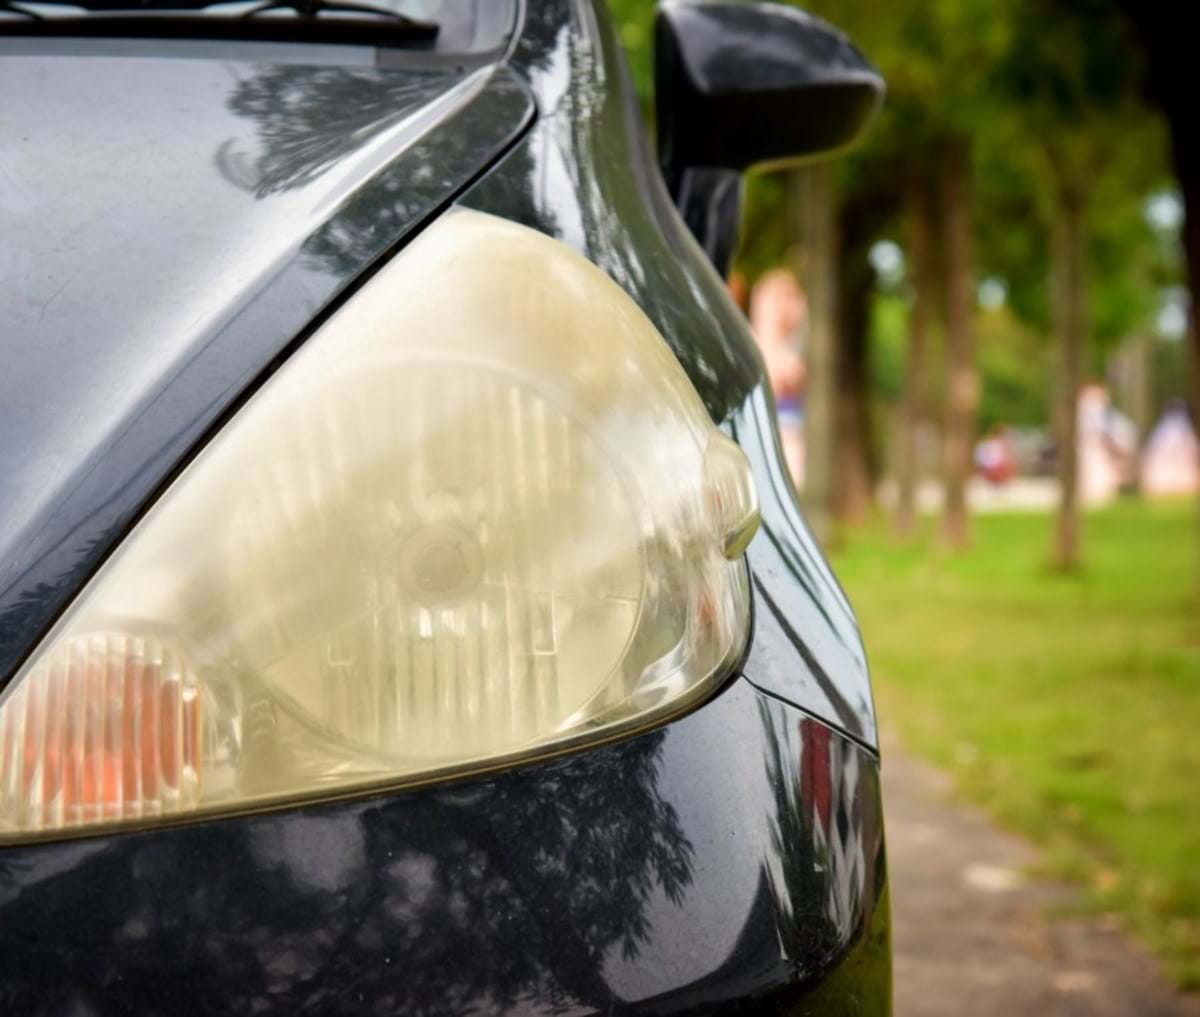 how-to restore headlights - turtle wax - cloudy/foggy causes